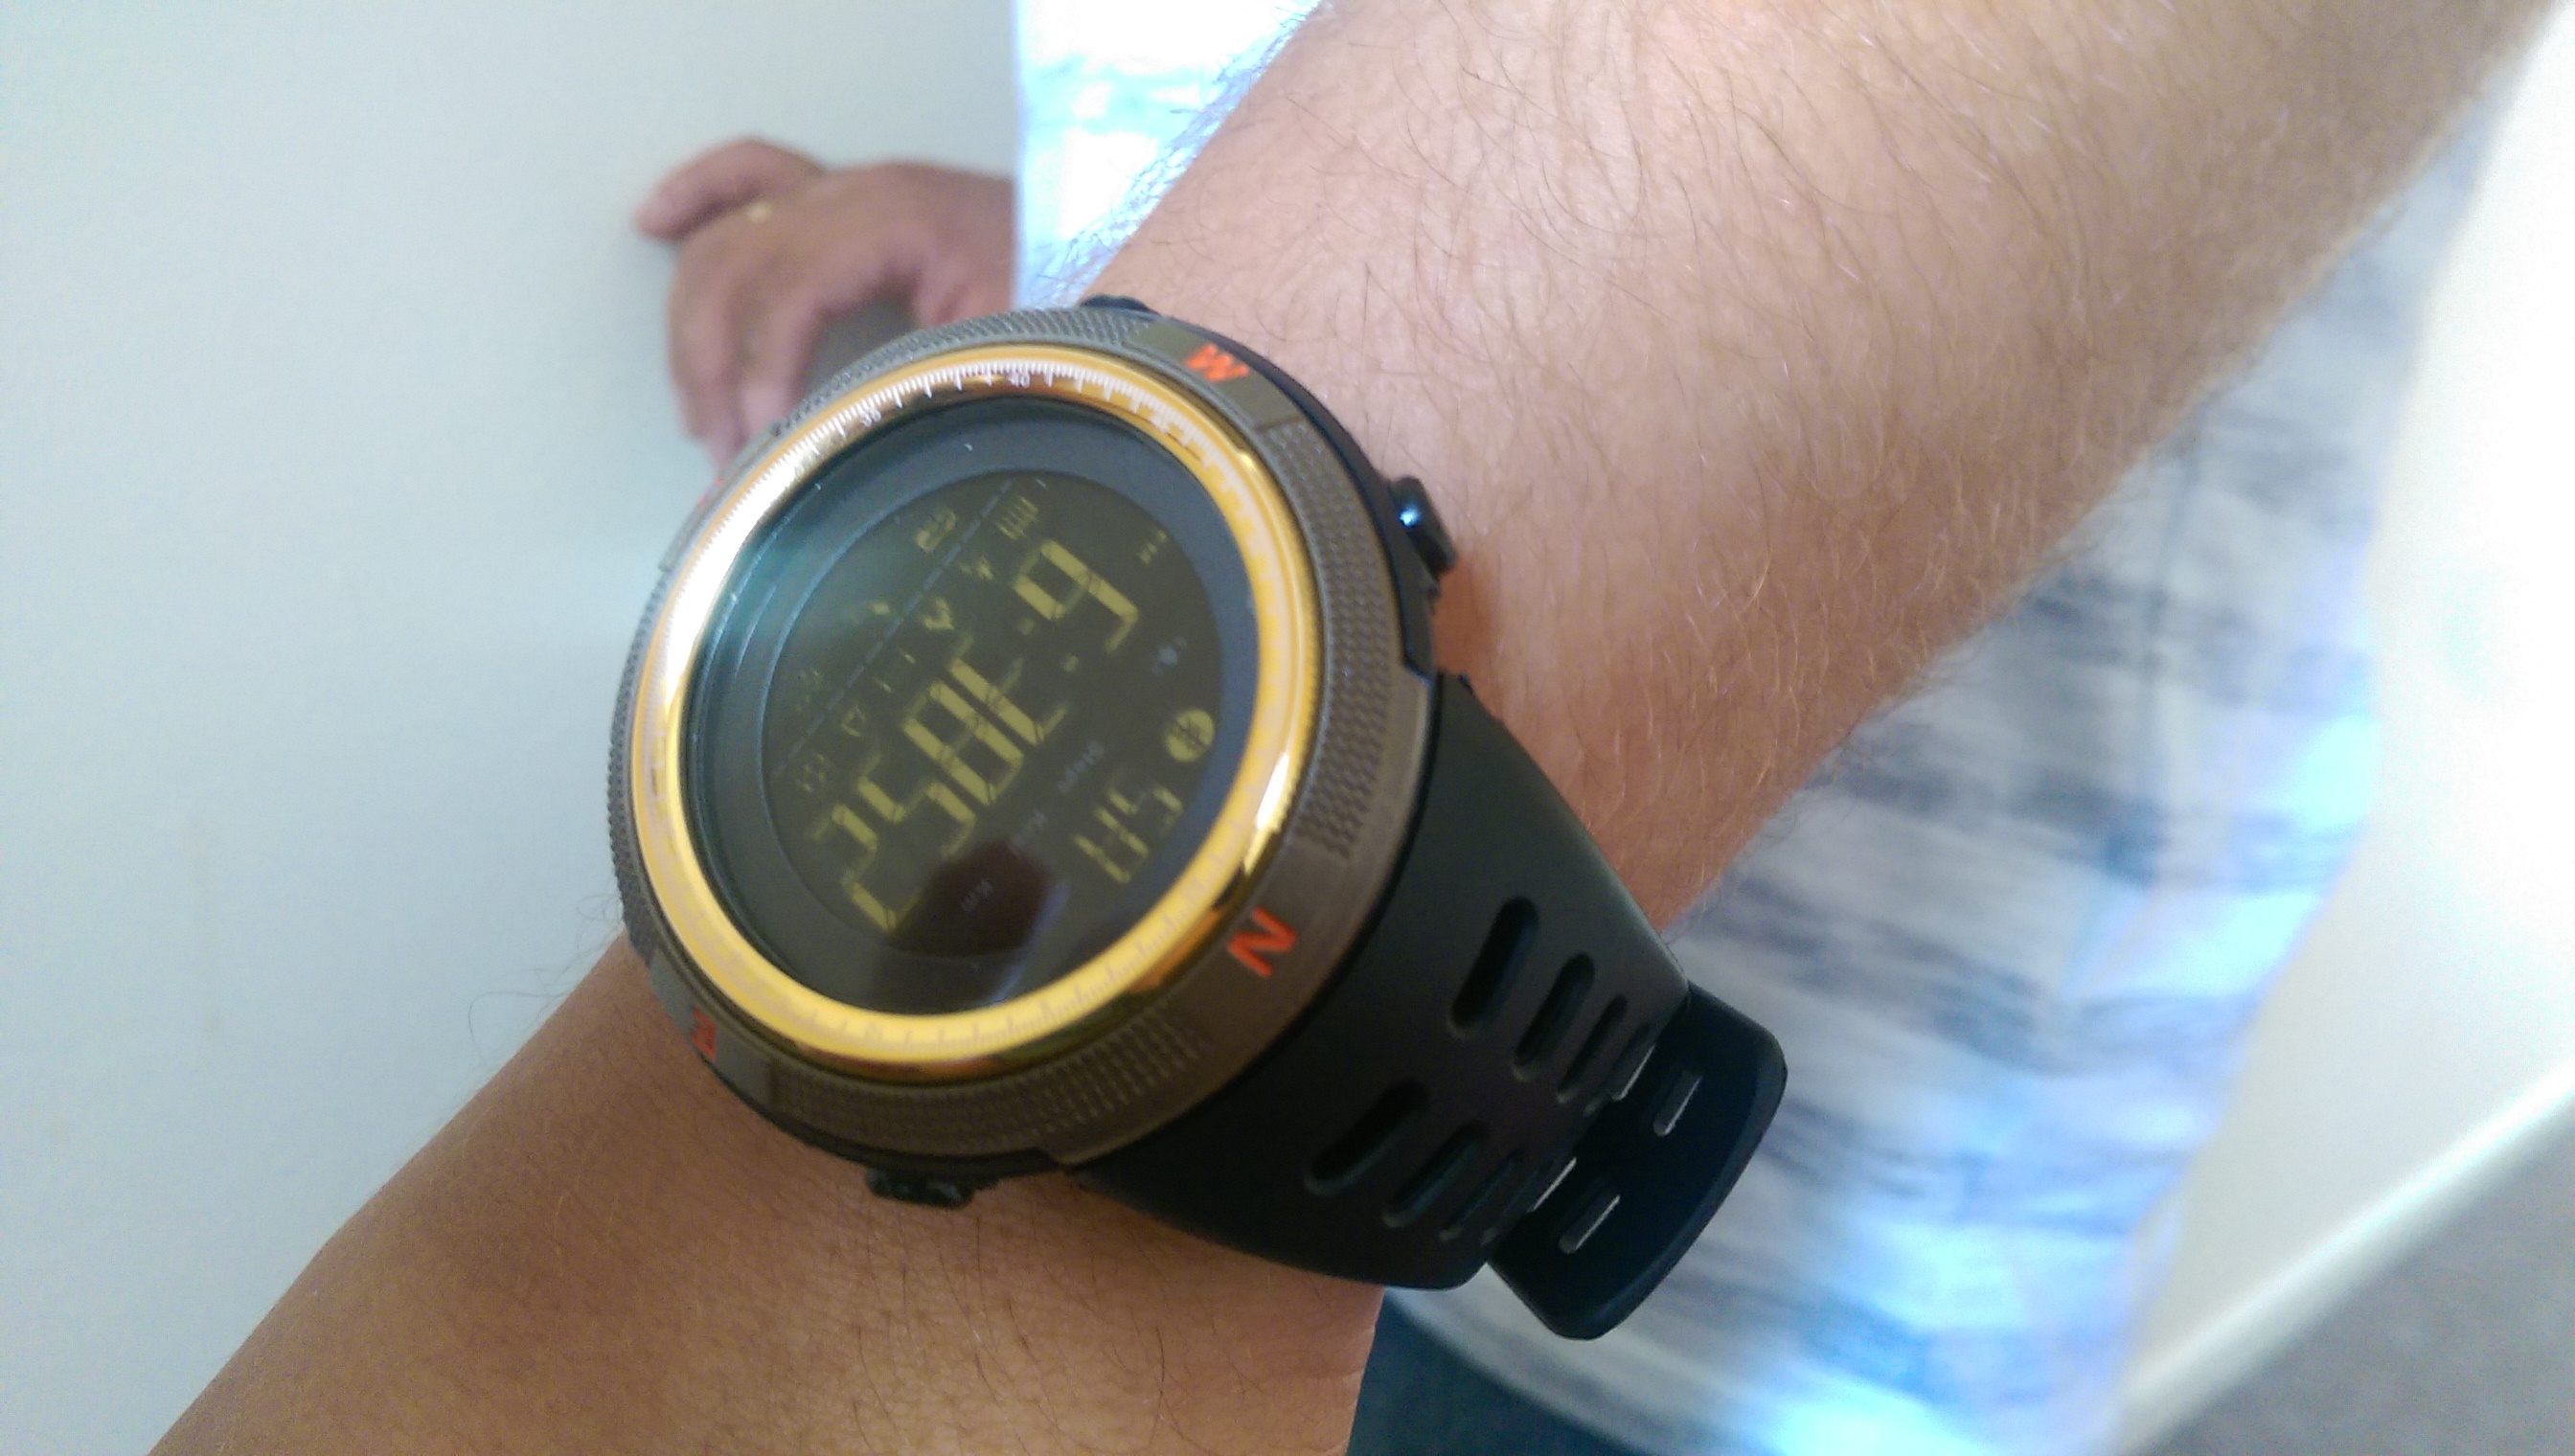 Best fitness watch if you want comfort